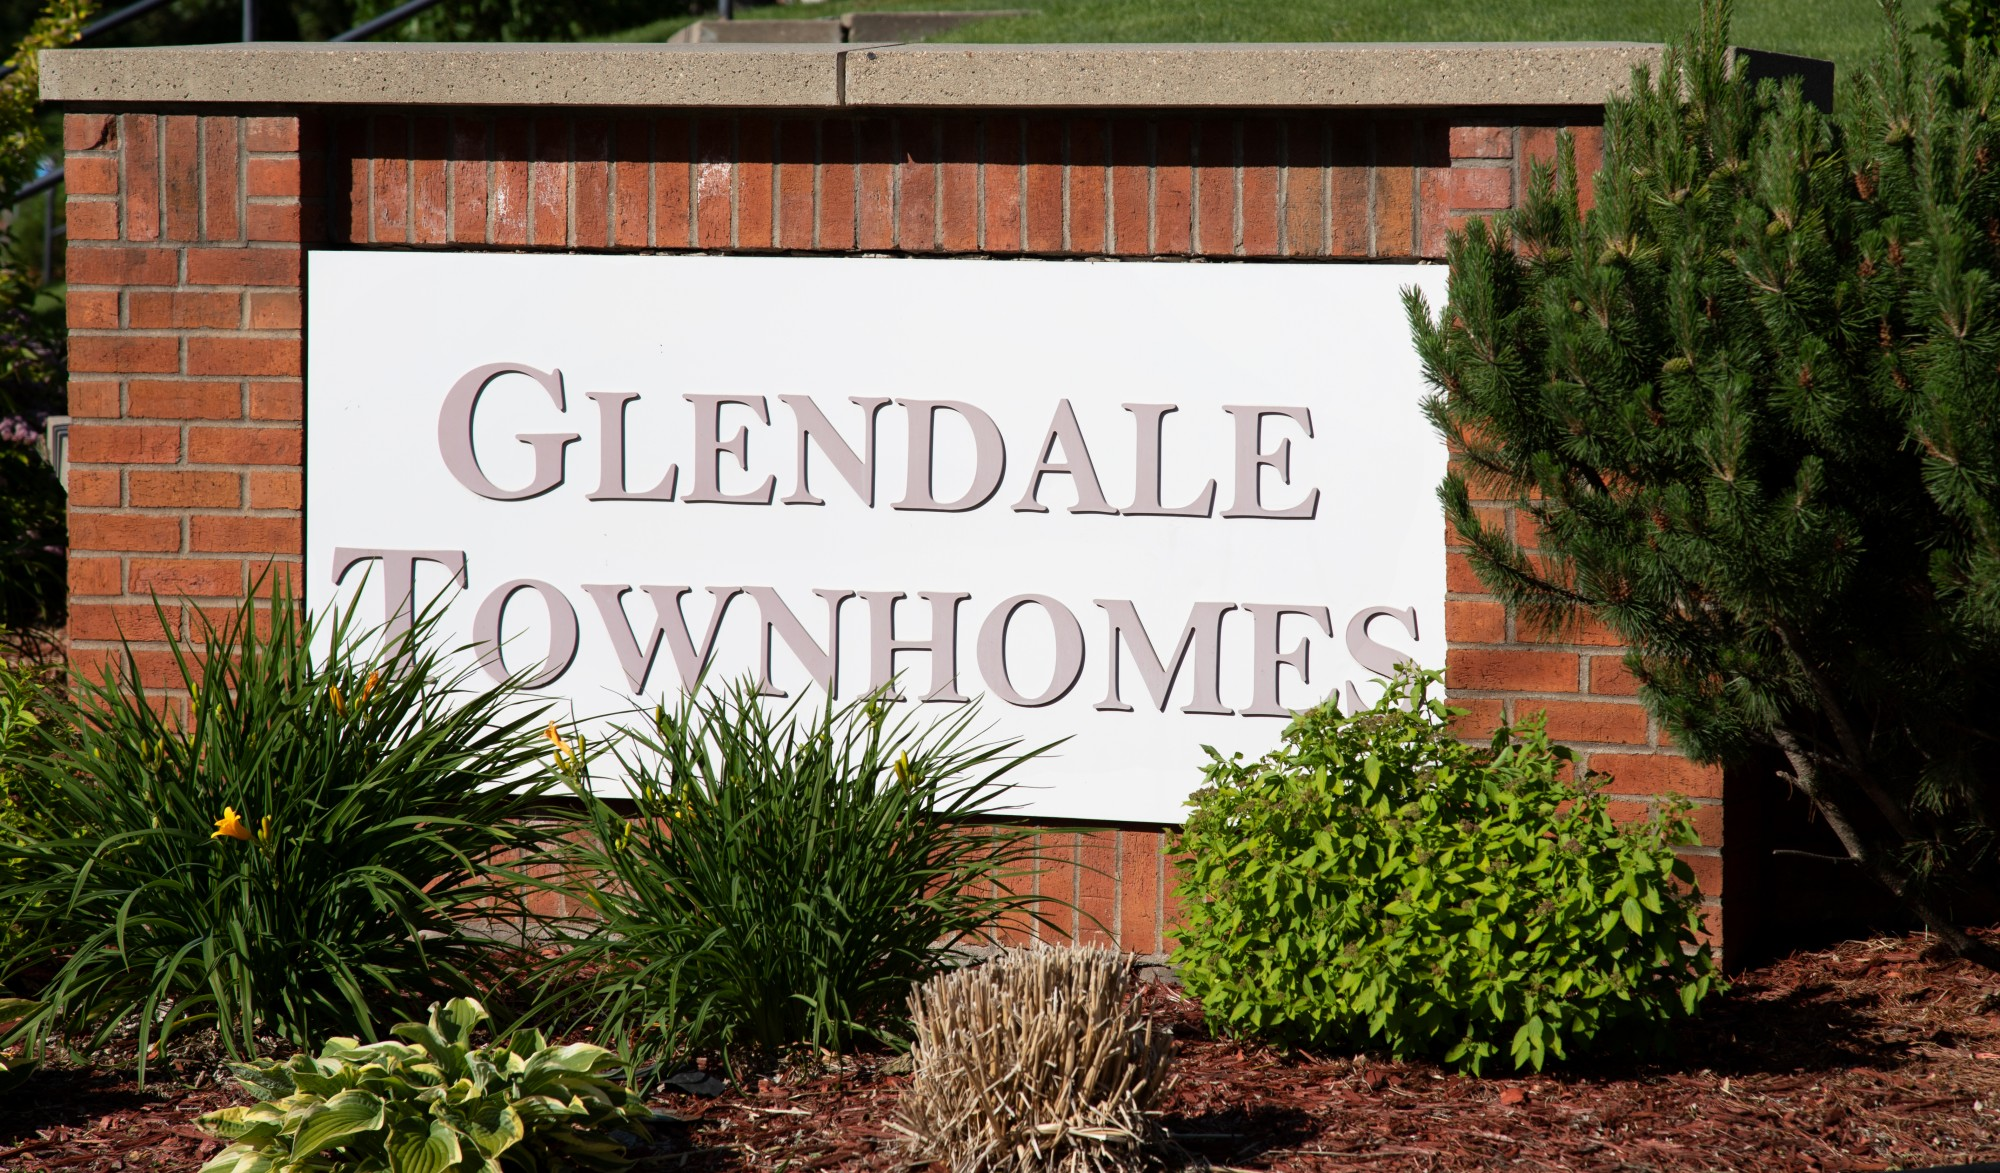 Glendale Townhomes, one site where mutual aid funding is being given on Monday, June 8.